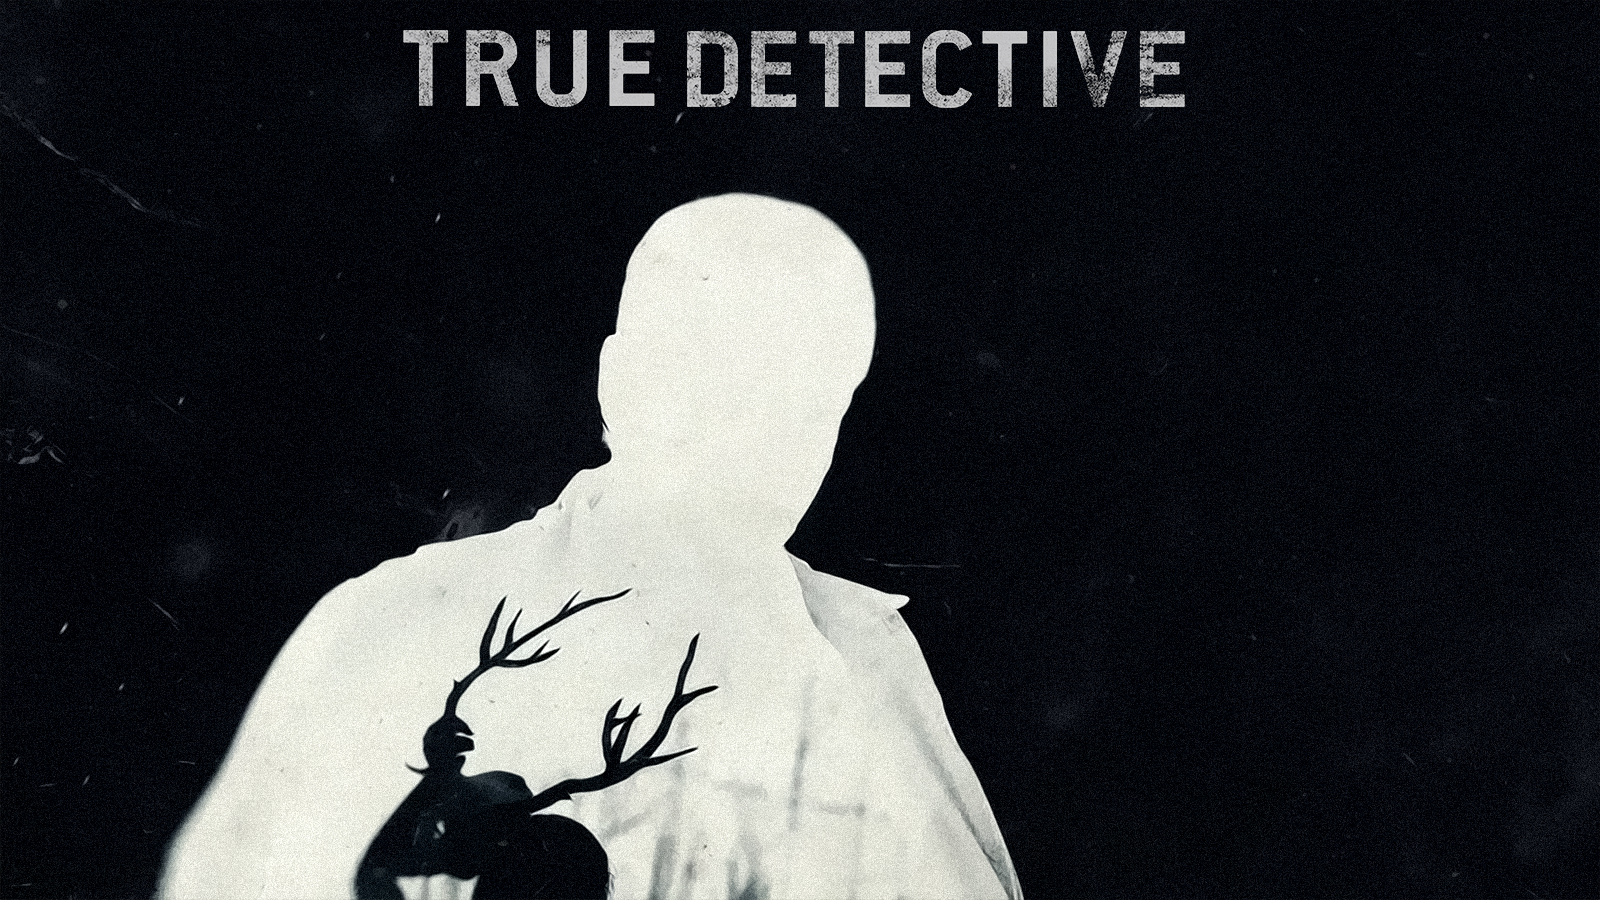 true-detective-wallpapers-3.jpg